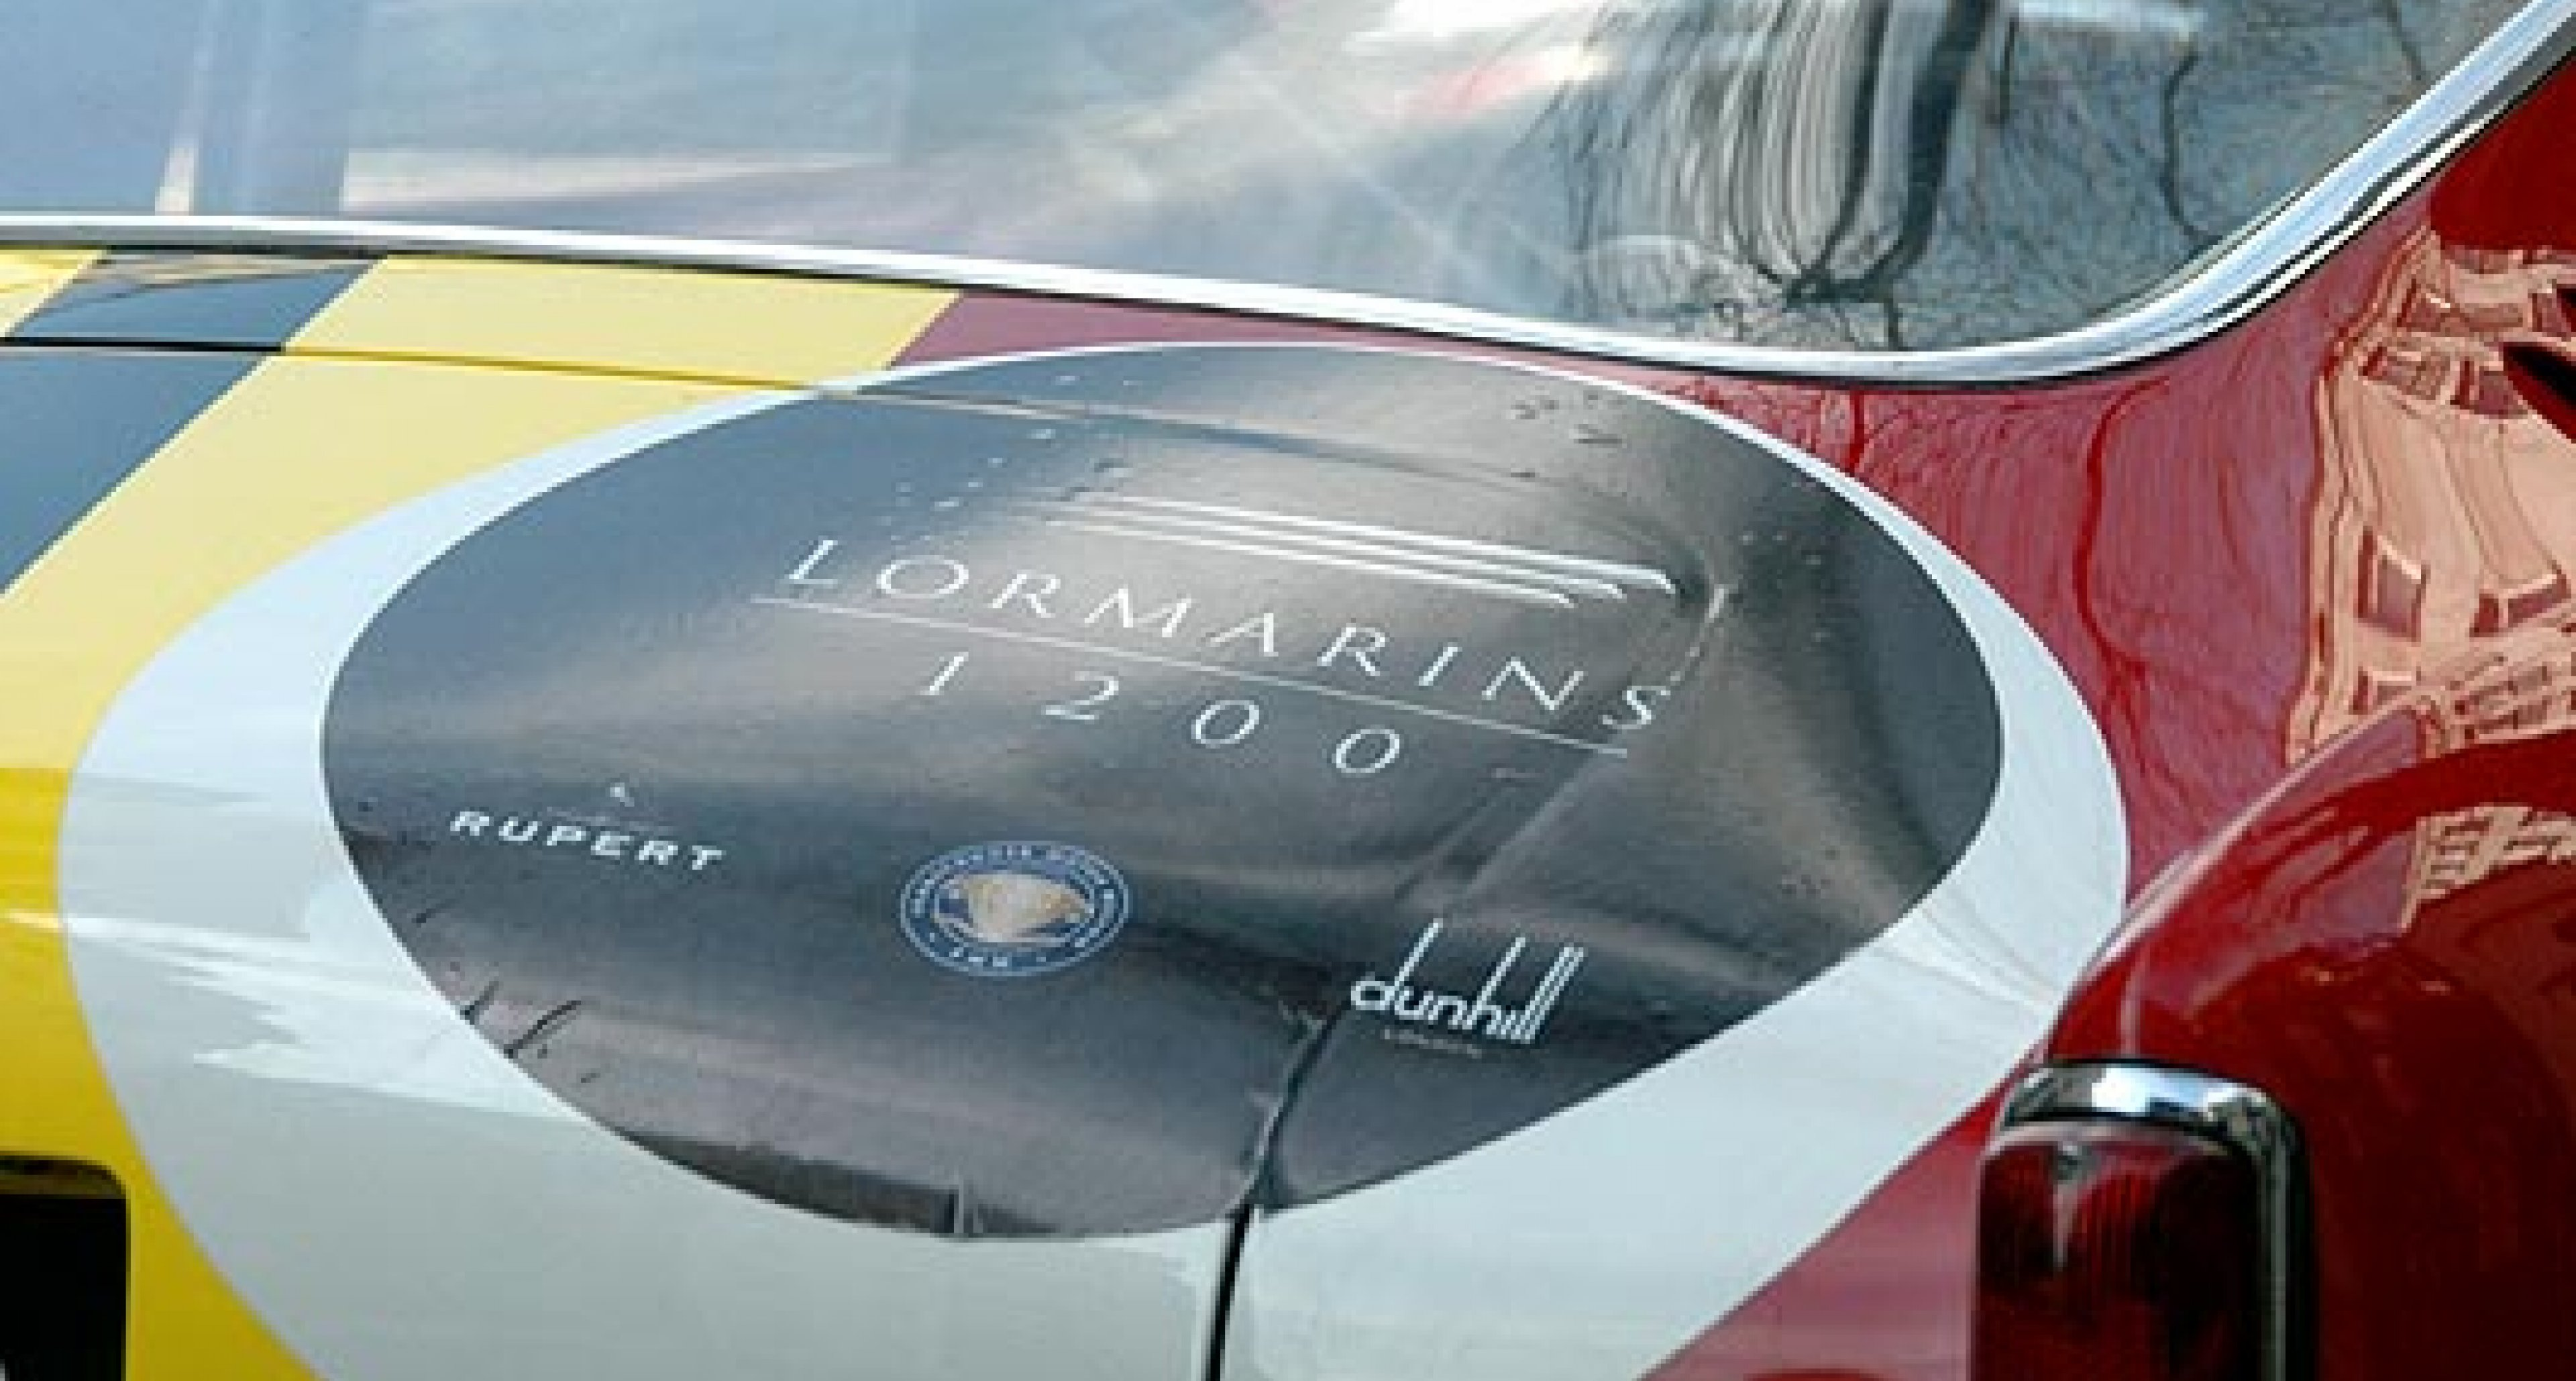 The 2010 'Lormarins 1200' Road Rally